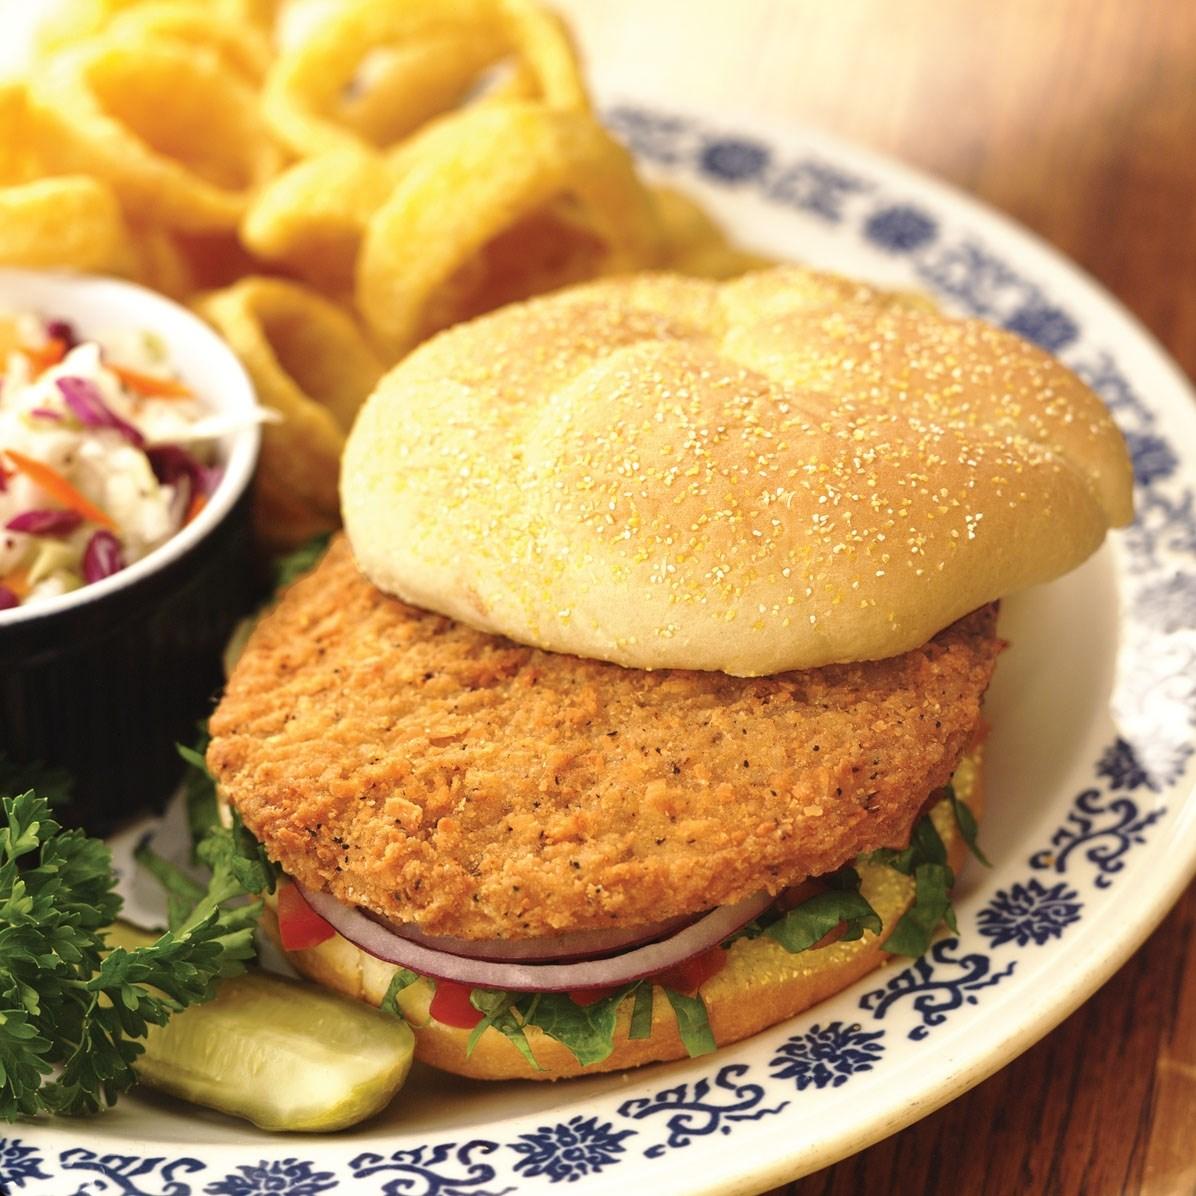 Kings Delight® No Antibiotics Ever, Fully Cooked, Spicy, Whole Grain Chicken Breast Pattie Fritters, Cn…<br/>(66222)